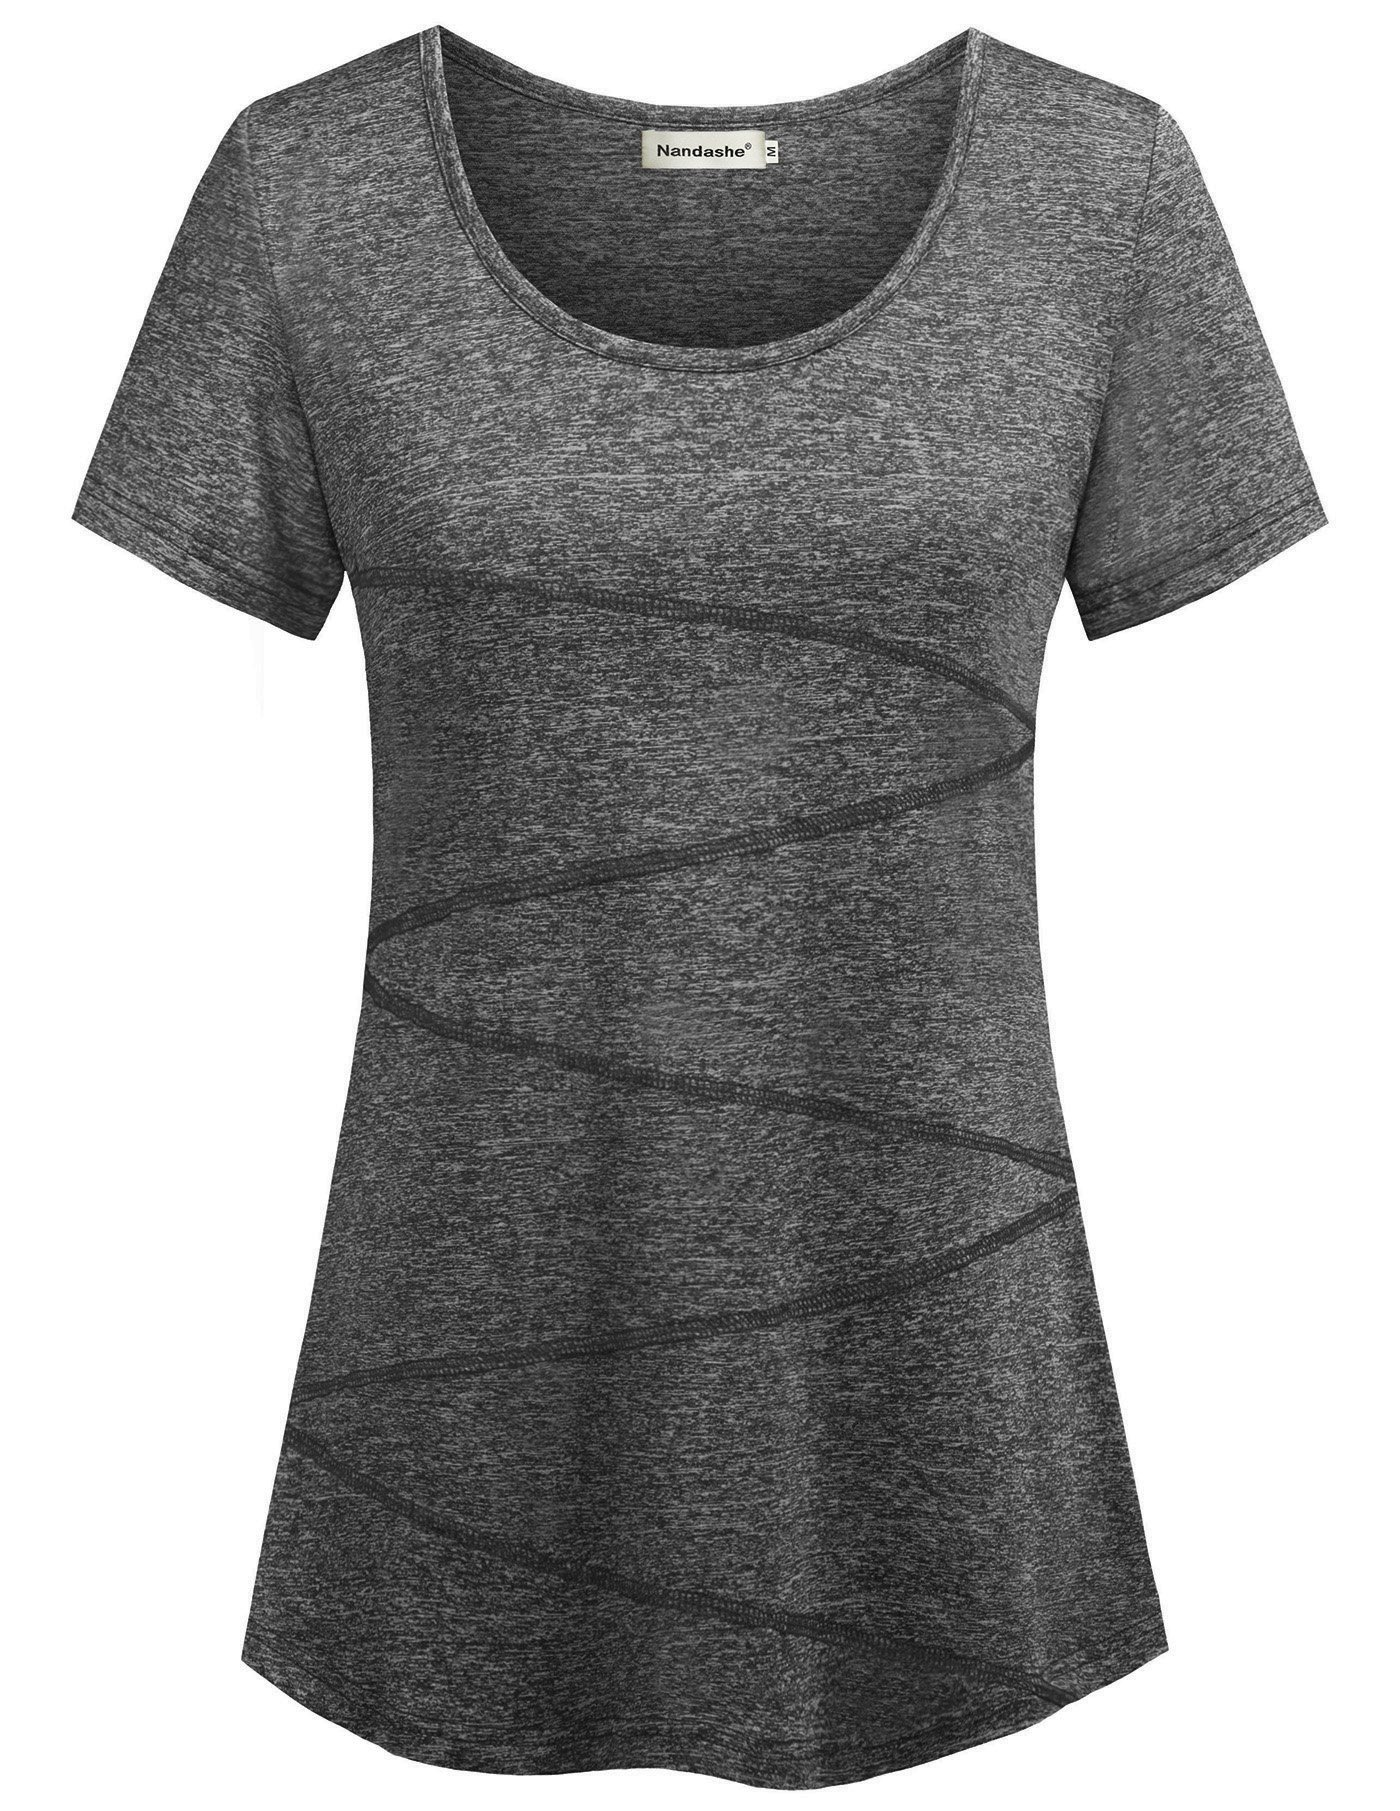 Moisture Wicking Shirts Women,Nandashe New Arrival Modern Misses Cute Crew Neck Solid Comfy Breathable Vivid Chic Style Gorgeous Lightweight Leisure Athletic Wear Pullover T-shirt Dark Grey Large